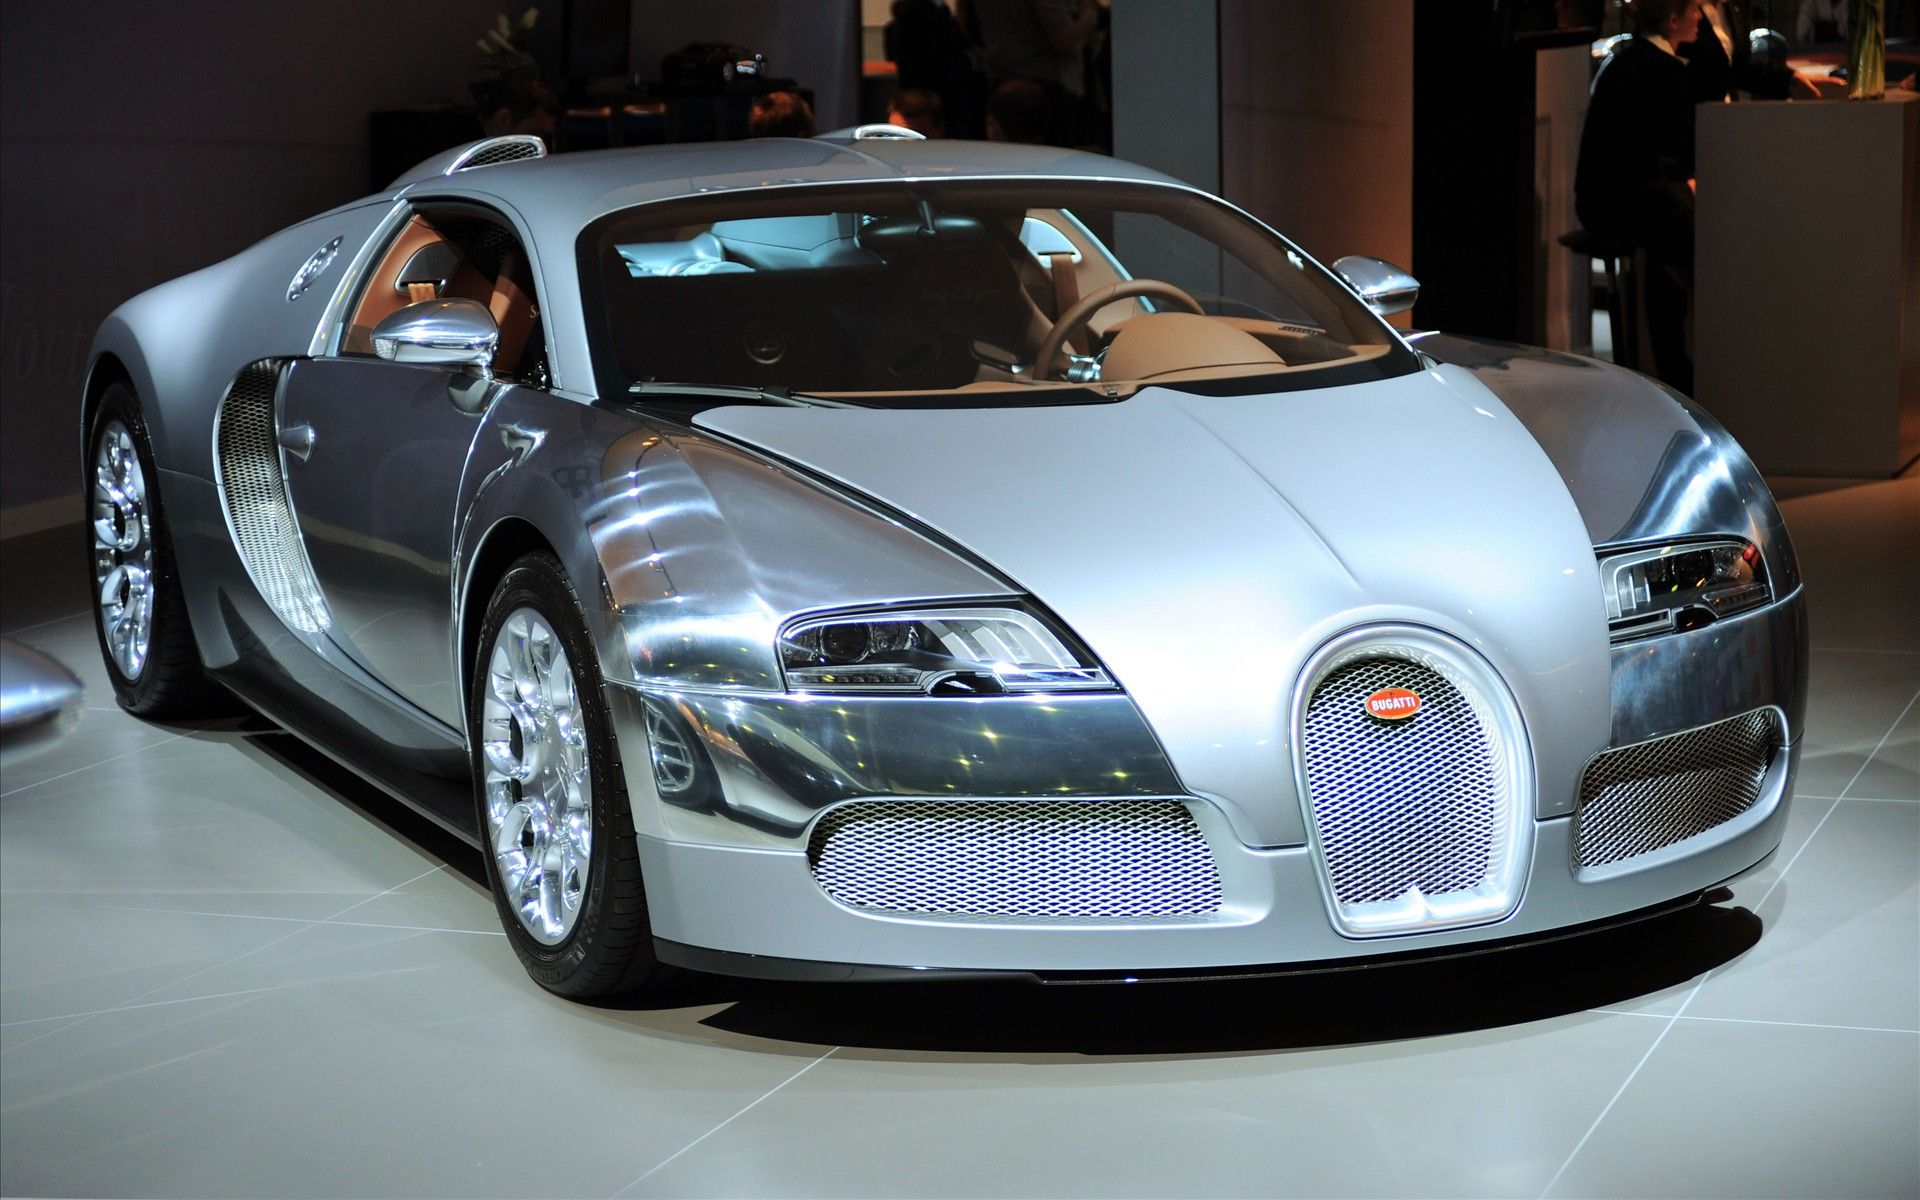 e7856b0ad41b1a18fe62814f07afaab6 Remarkable New Bugatti Veyron 2017 Price Cars Trend